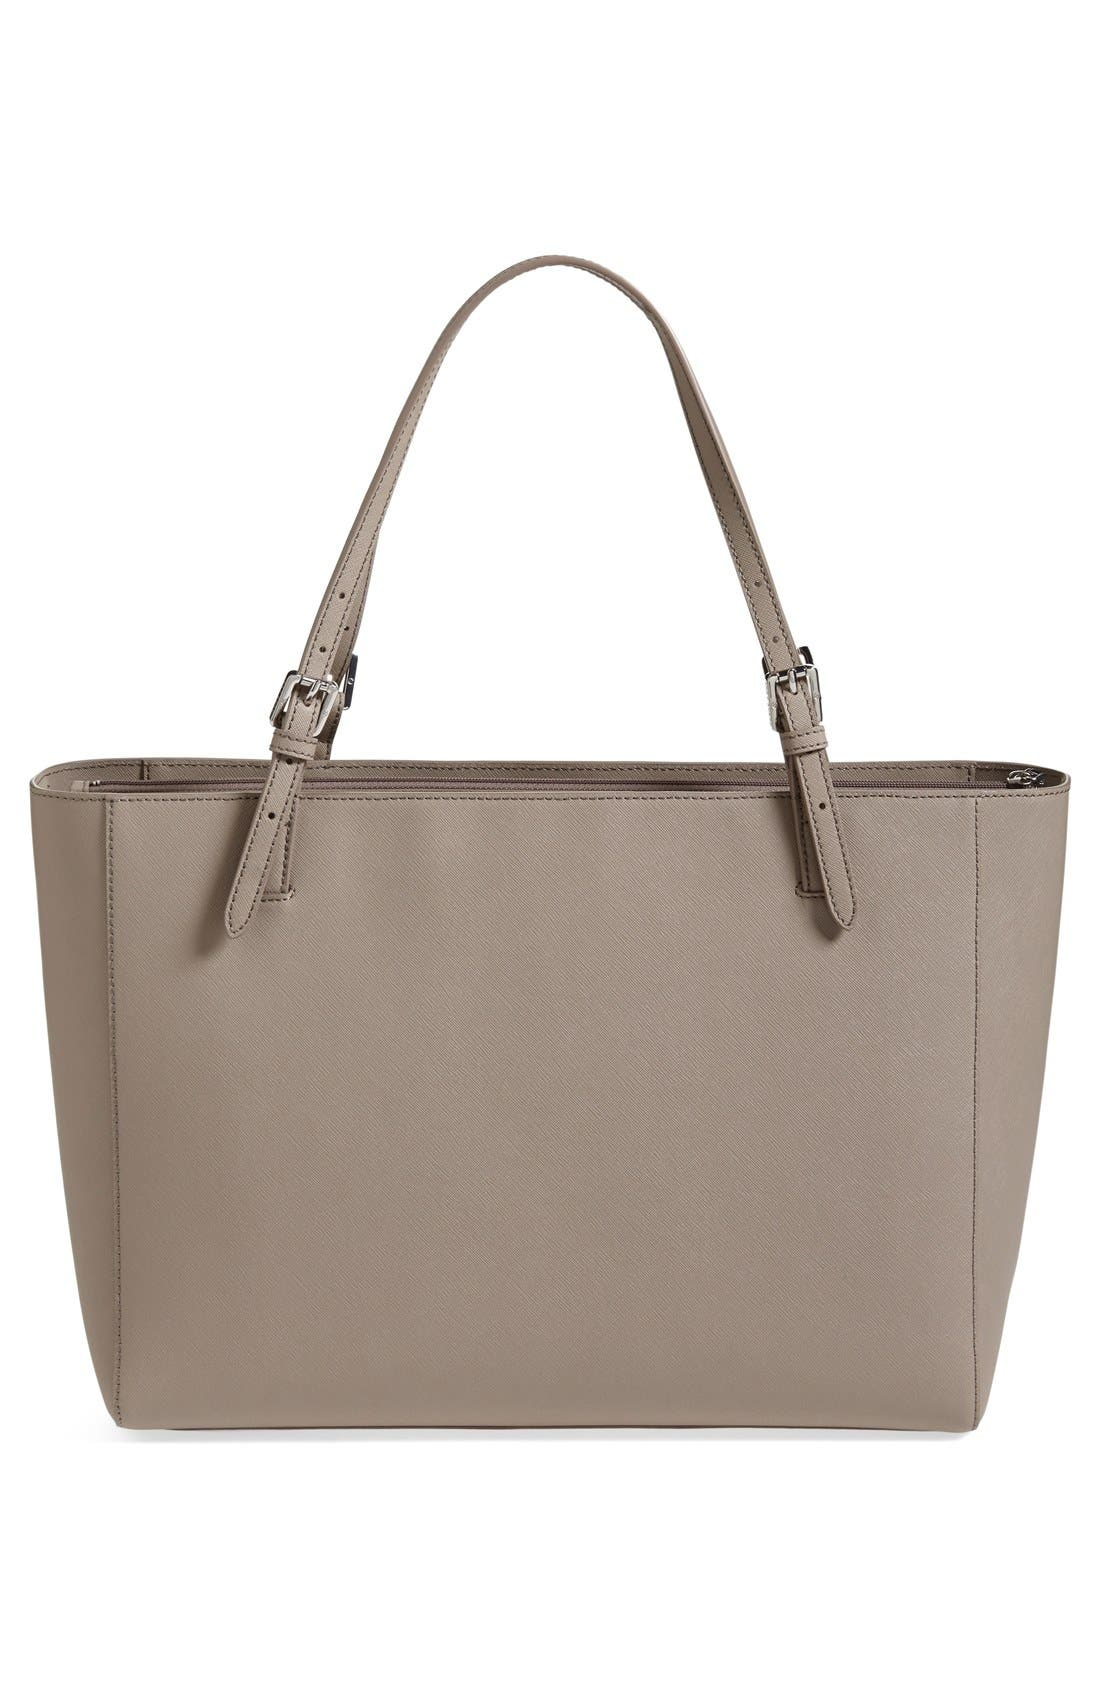 TORY BURCH, 'York' Buckle Tote, Alternate thumbnail 3, color, 020